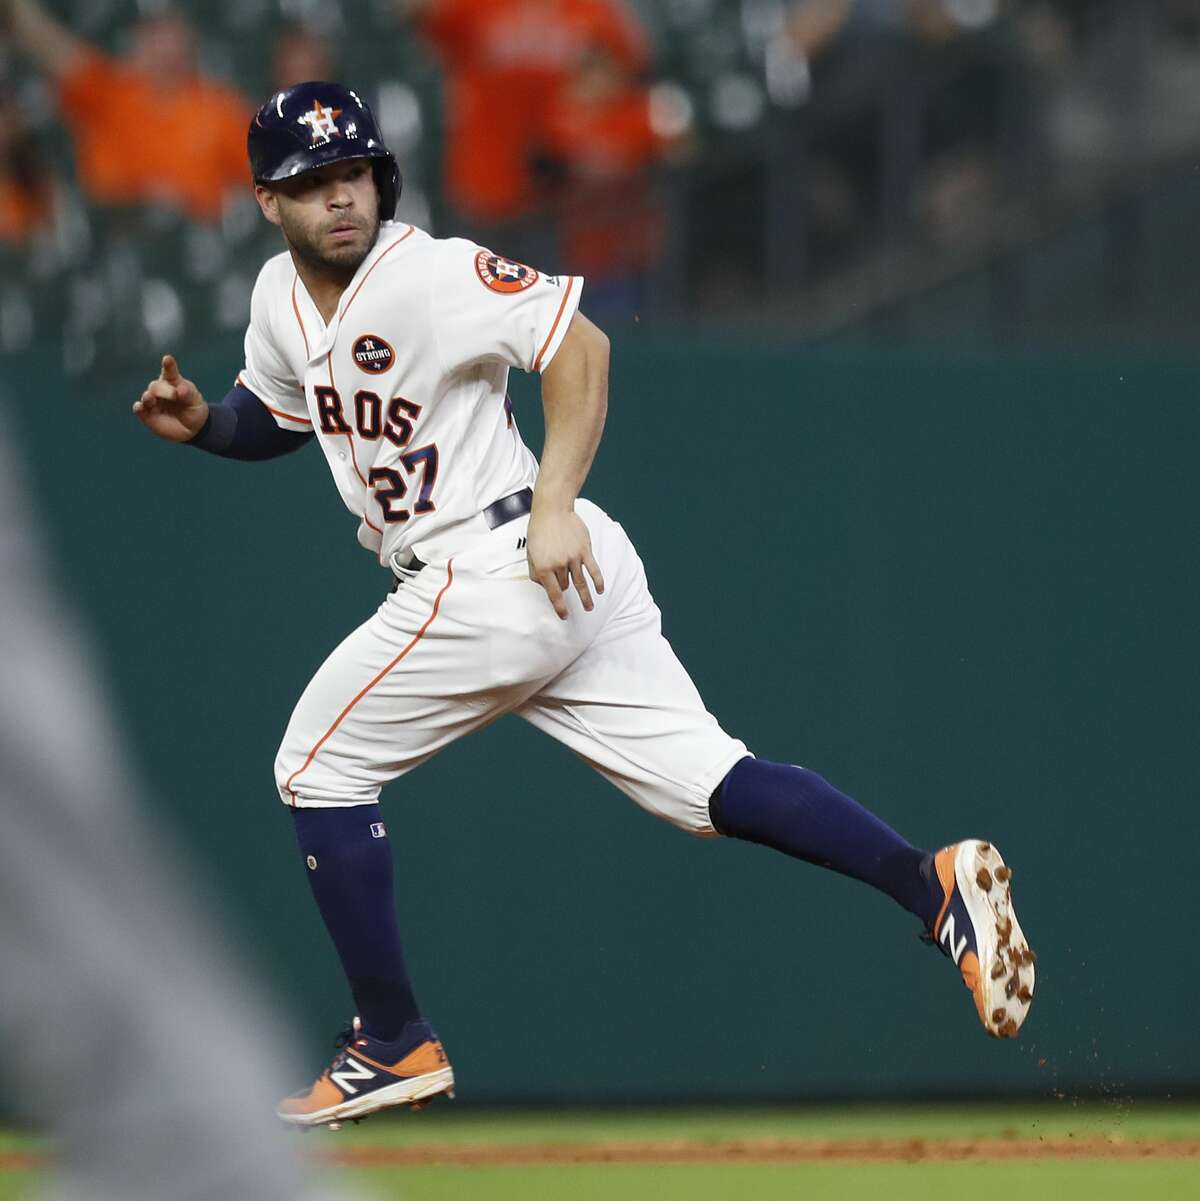 Houston Astros Jose Altuve (27) is nearly picked off of first base, but a throwing error allowed him to advance to third base during the seventh inning of an MLB baseball game at Minute Maid Park, Wednesday, Sept. 20, 2017, in Houston. ( Karen Warren / Houston Chronicle )